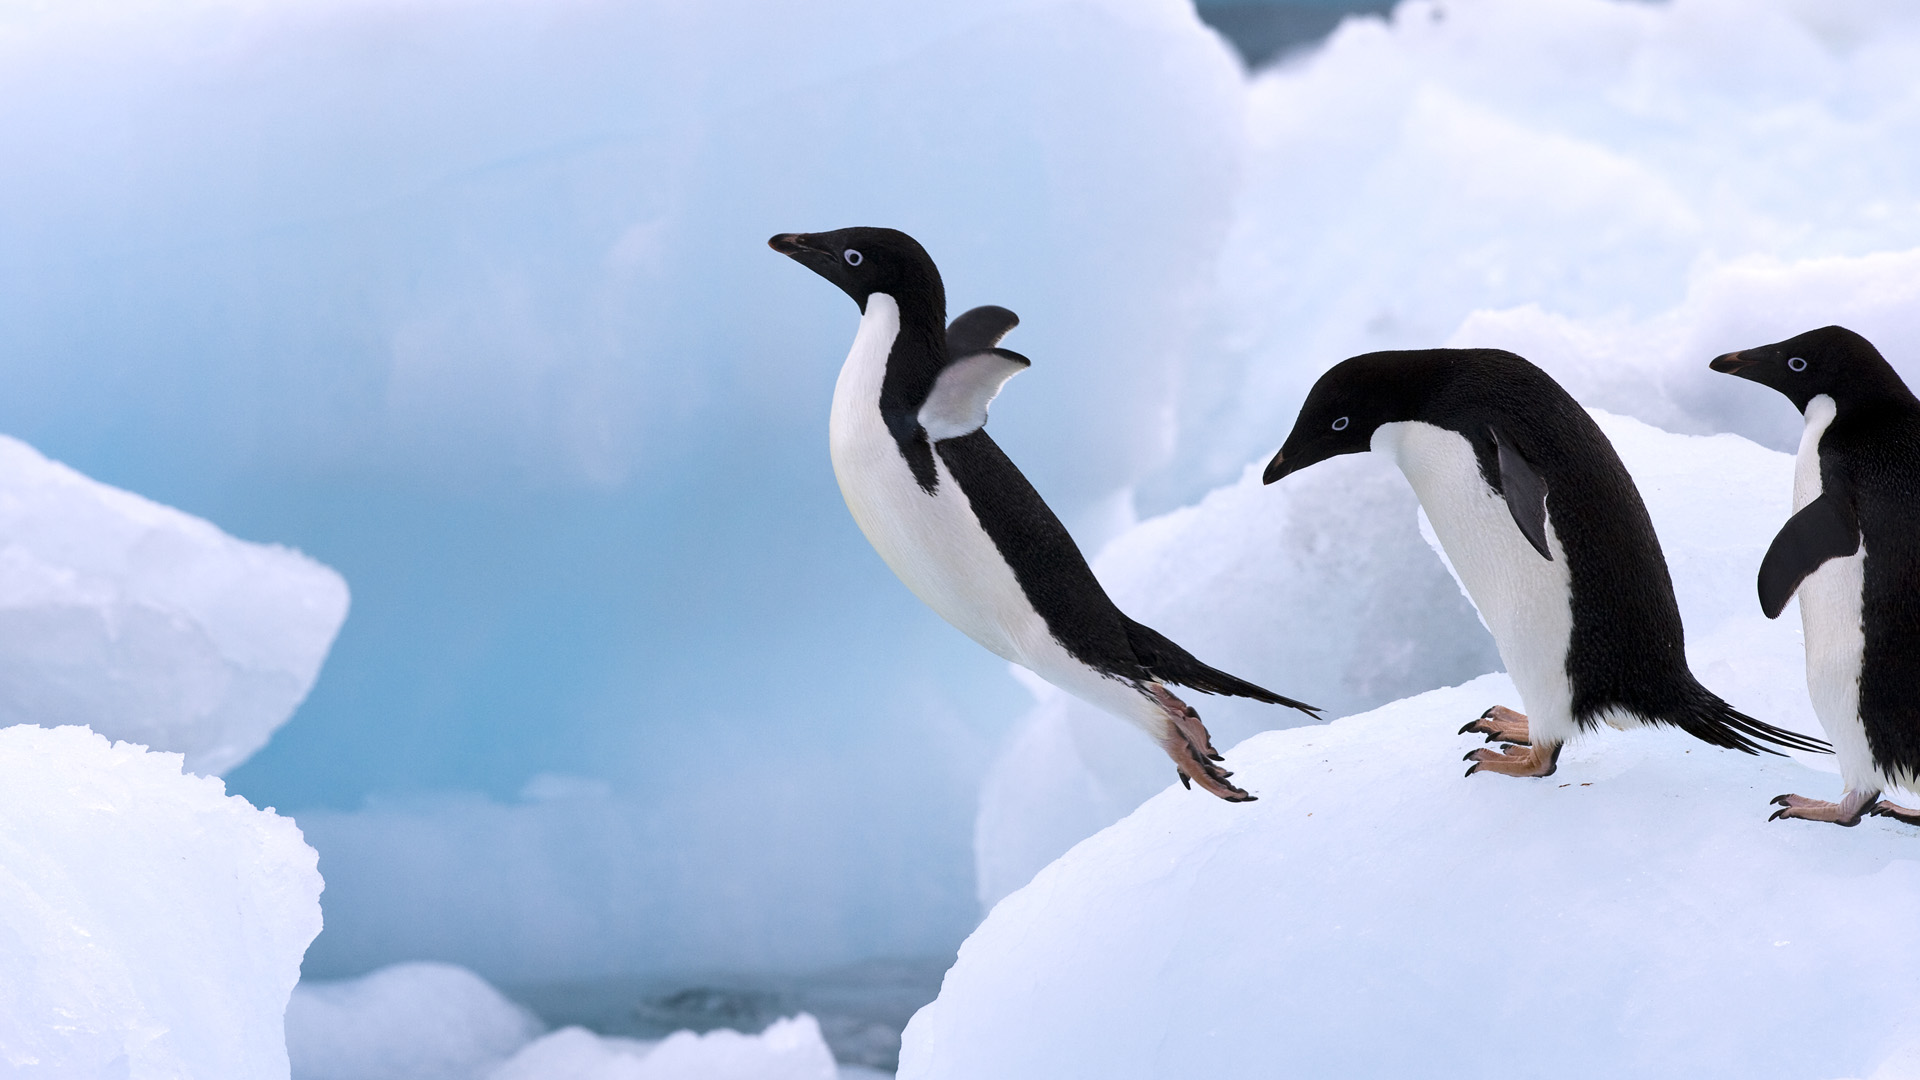 an analysis of the penguin animal species Adélie penguin courtship, mating and chick hatching - view incredible adélie  penguin videos  iucn red list species status – near threatened  the adélie  penguin displays 'natal philopatry', meaning that, under normal circumstances,    .